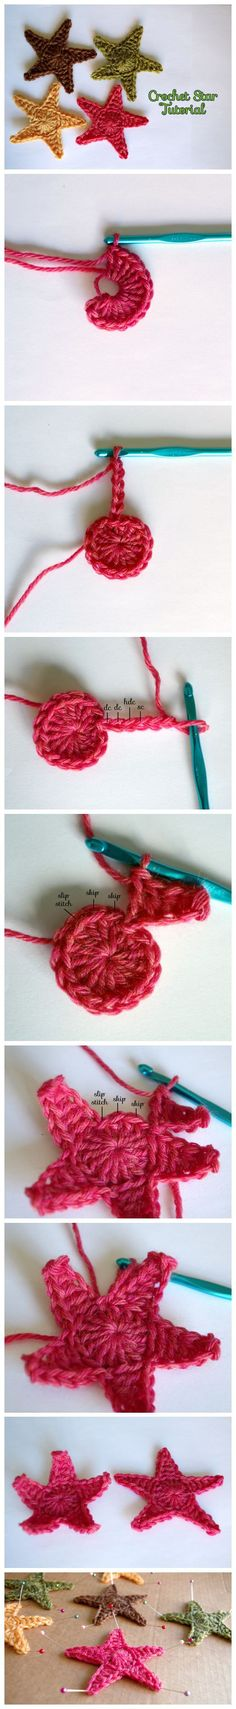 "#Crochet_Tutorials - #Wonderful simple crocheted star tutorial. Great for Christmas ornaments with a loop added, or for garlands."" Enjoy from #KnittingGuru ** http://www.pinterest.com/KnittingGuru"